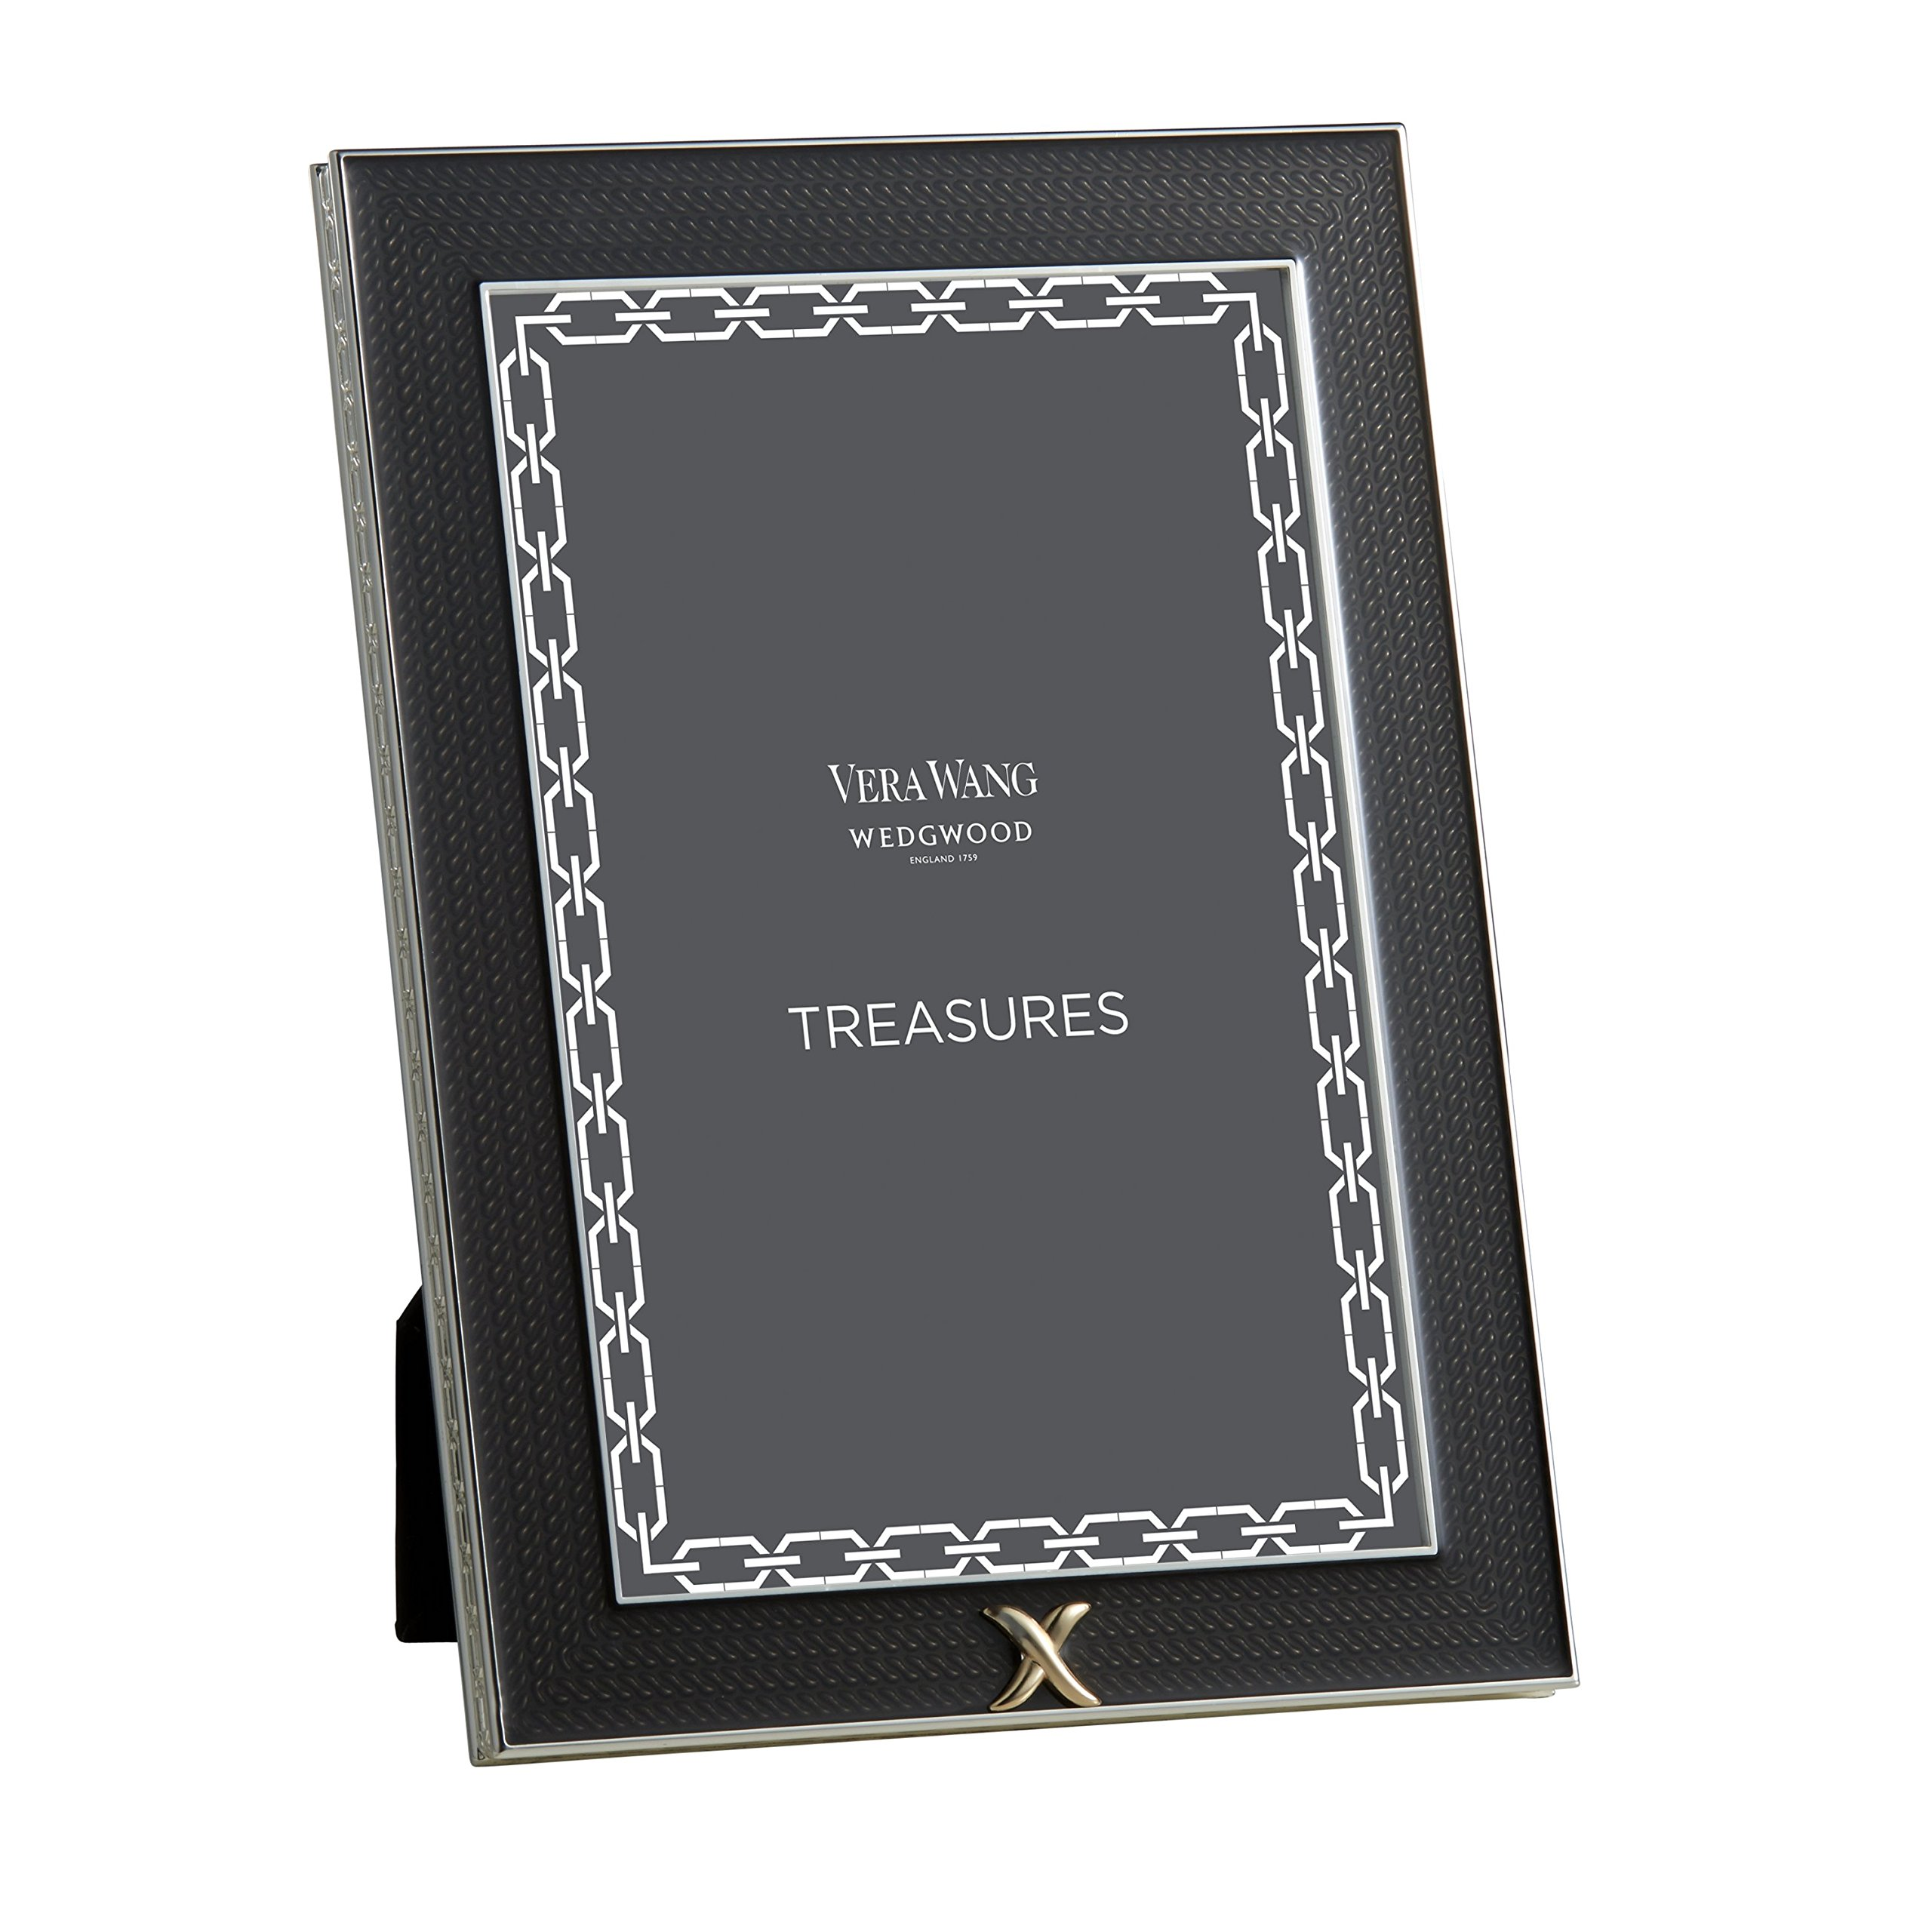 Wedgwood Treasures with Love Noir X Treasure Frame, 4 by 6-Inch